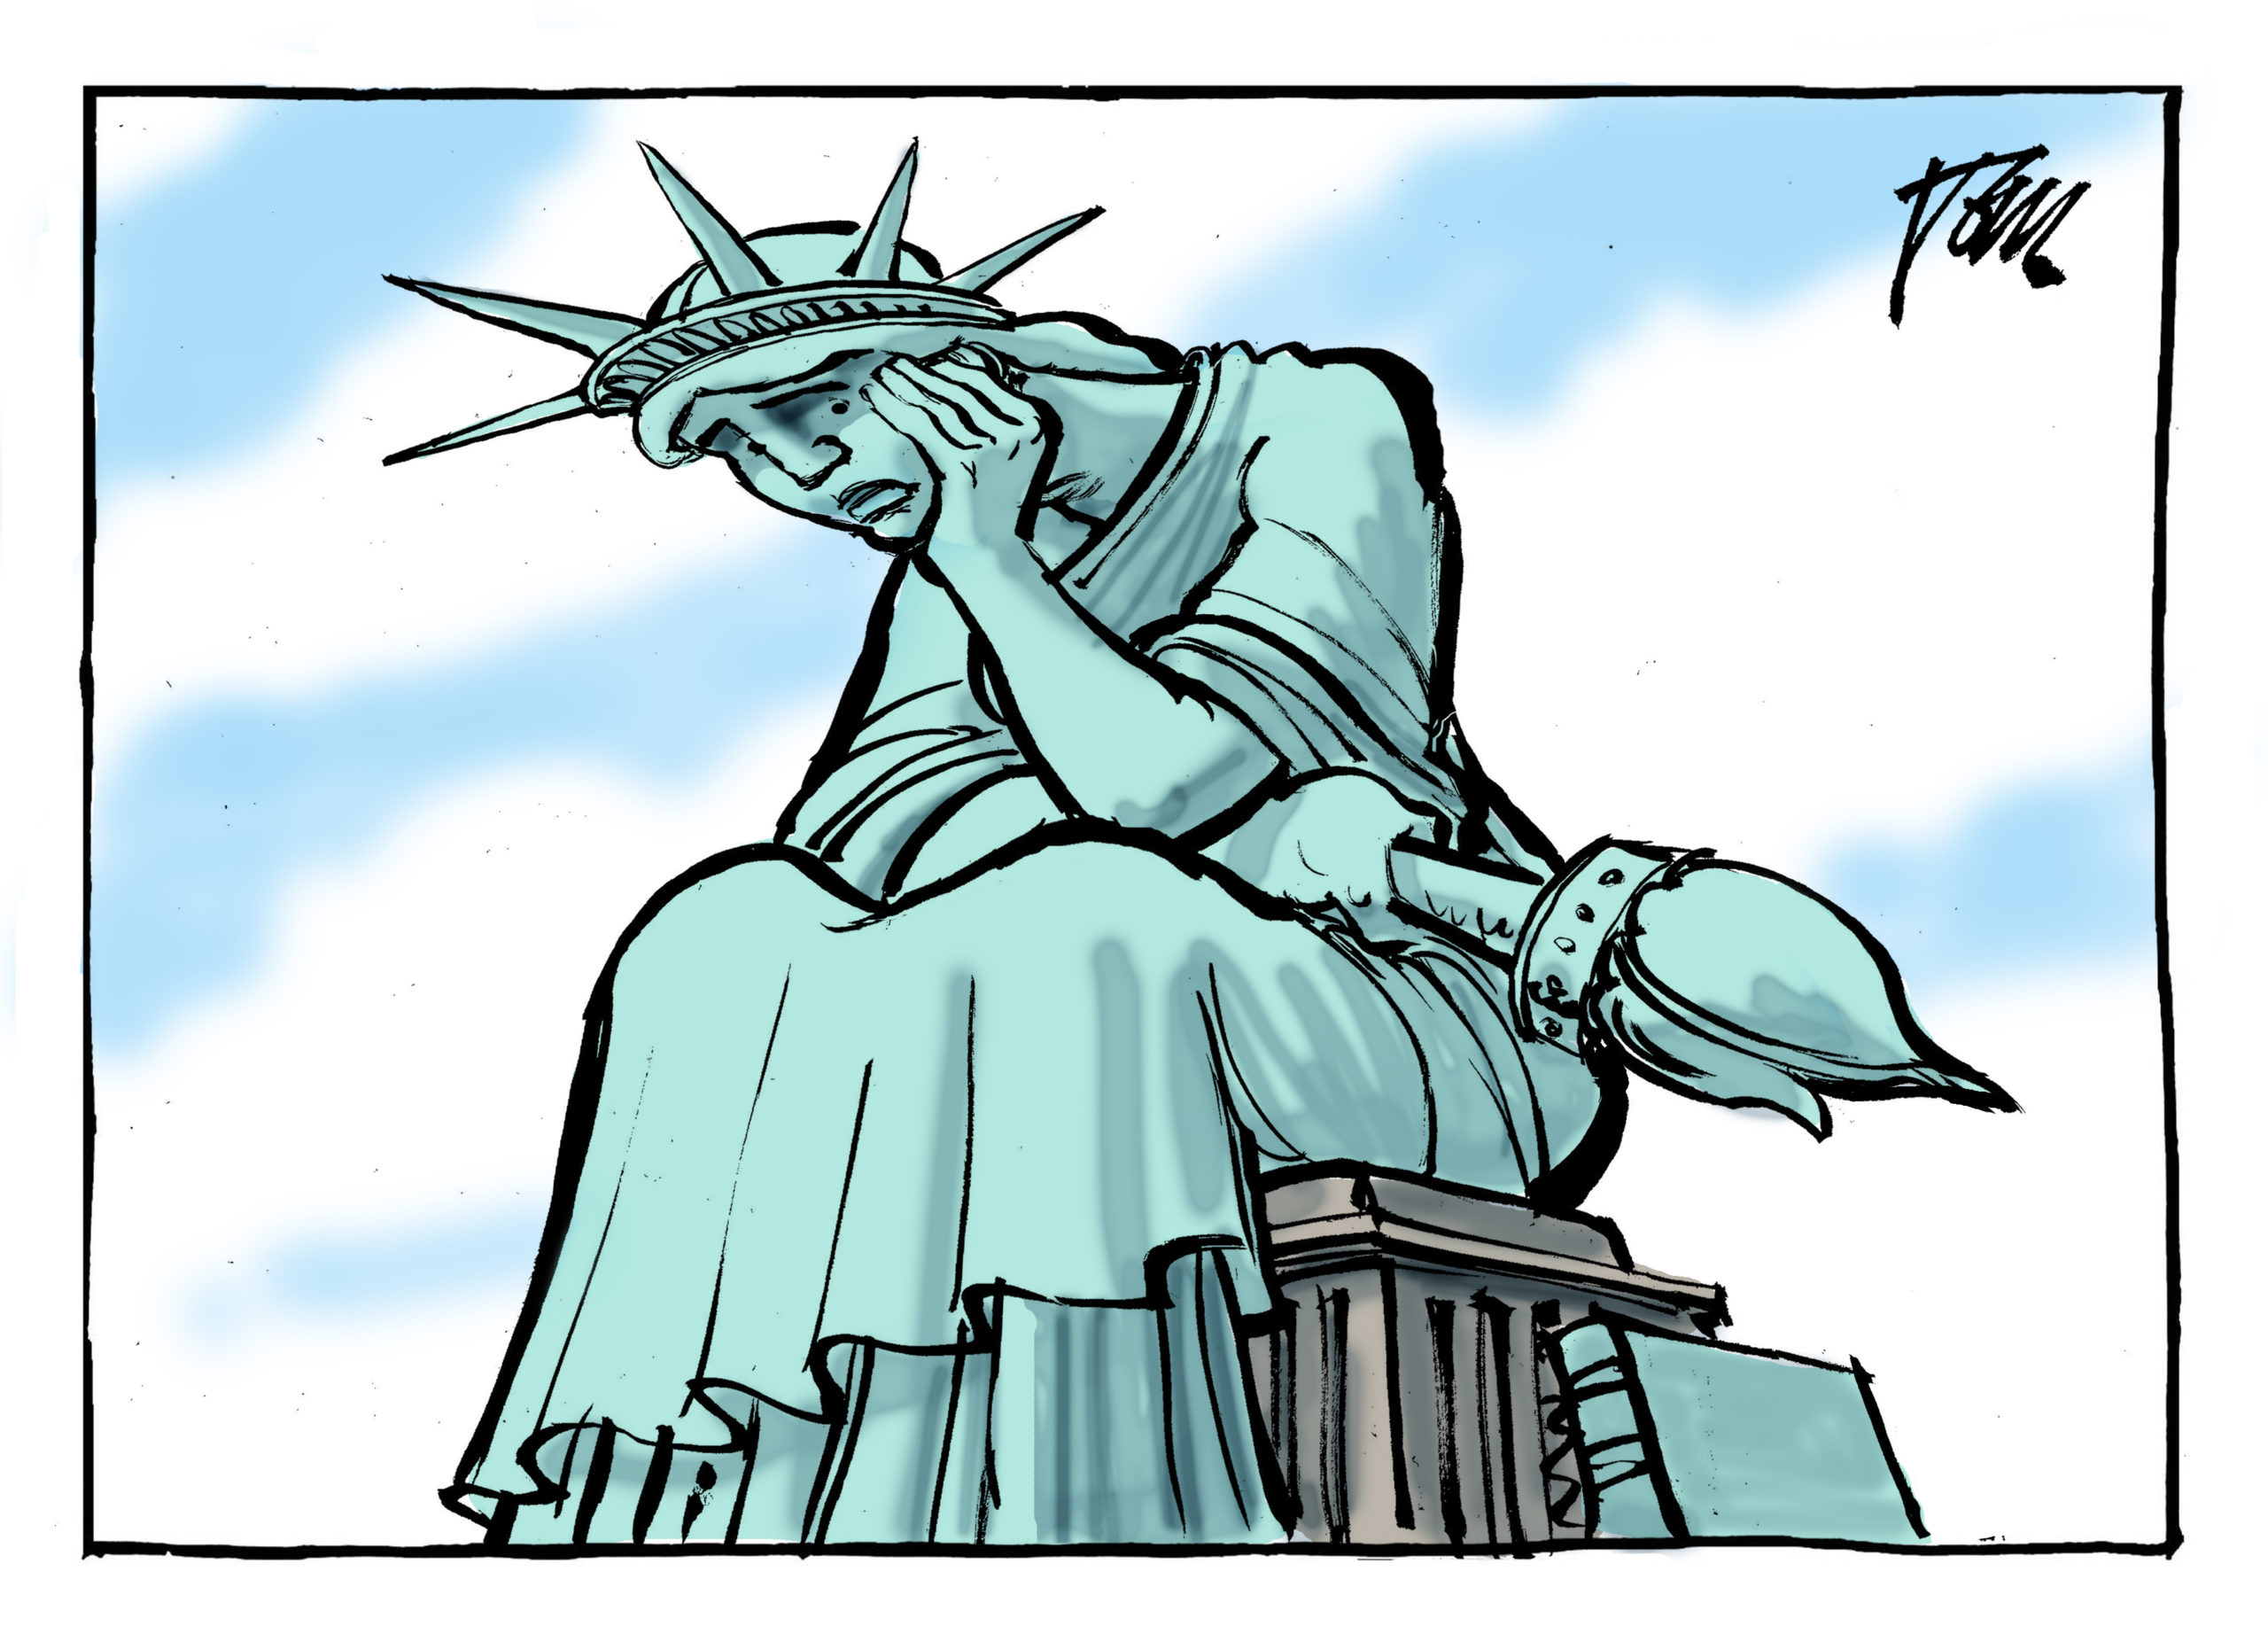 A cartoon of Lady Liberty with her head in her hand.